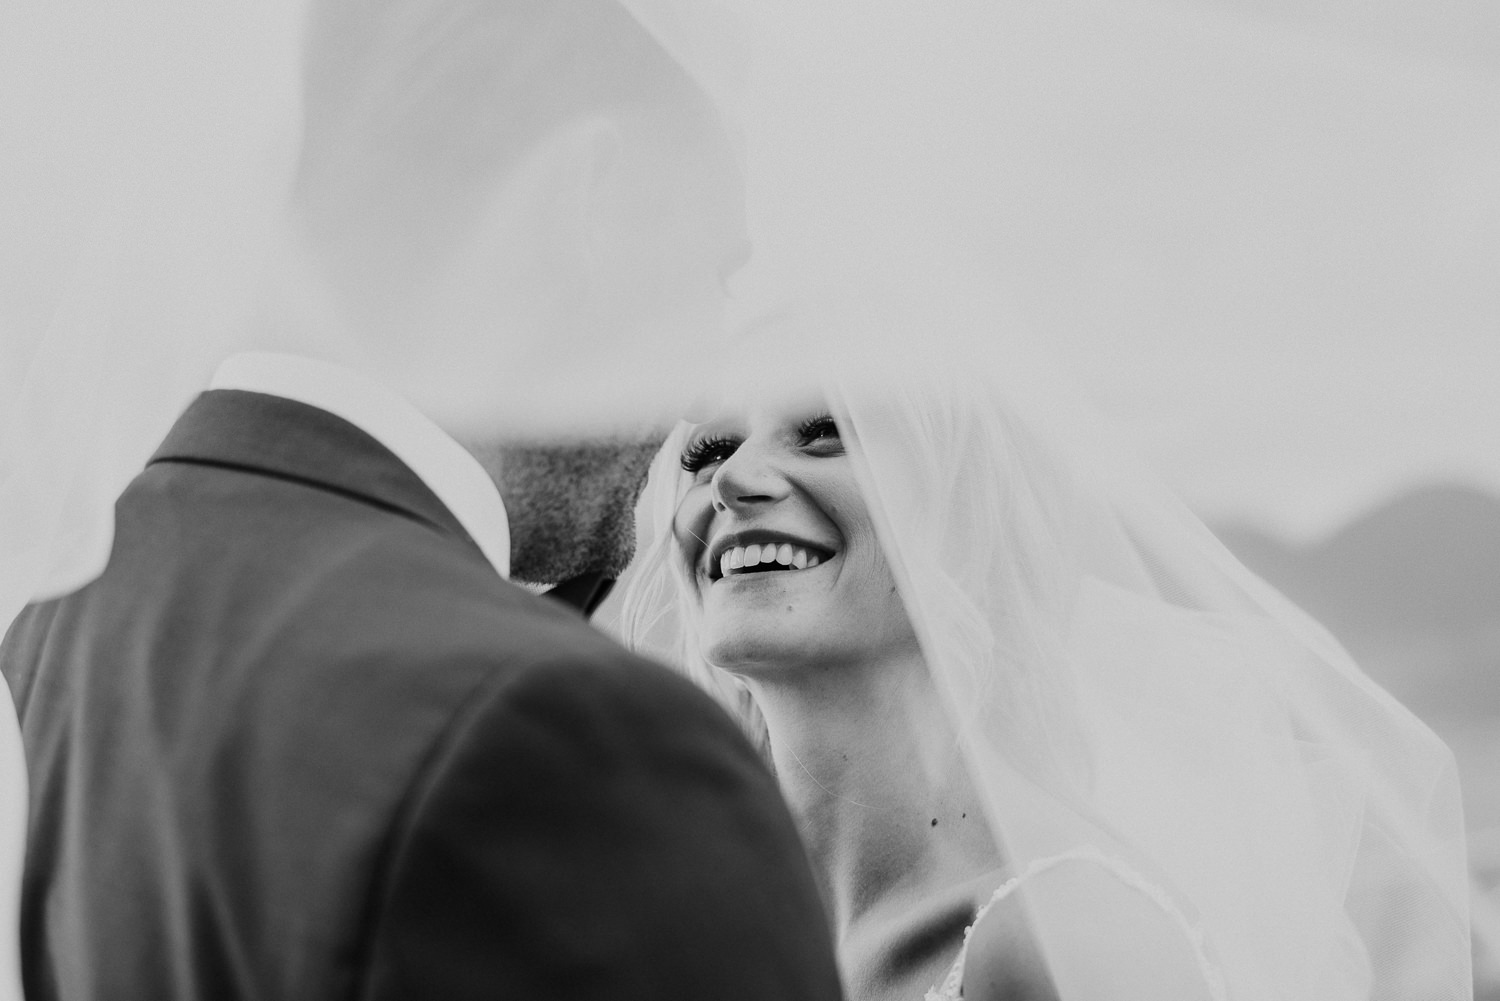 Amanda + Kaleb - Vancouver, BCSara is a raw, talented, efficient, creative photographer. Just having our wedding this past July 7, 2018, she checked all of the boxes for us. We knew from looking at her portfolio prior to our wedding, we loved her style. She captured each moment of our wedding day in candid, real form. On our special day, she made sure to stay on track with the timeline of the day, as well as making our photography experience fun and light. After receiving our wedding photos, we can really relive the day as perfectly as we imagined. If you want a photographer that captures candid moments, plays around with nature, light, and lines in her photography, and is not afraid to step outside the box to get great shots, Sara is the one!! Thank you Sara. XO